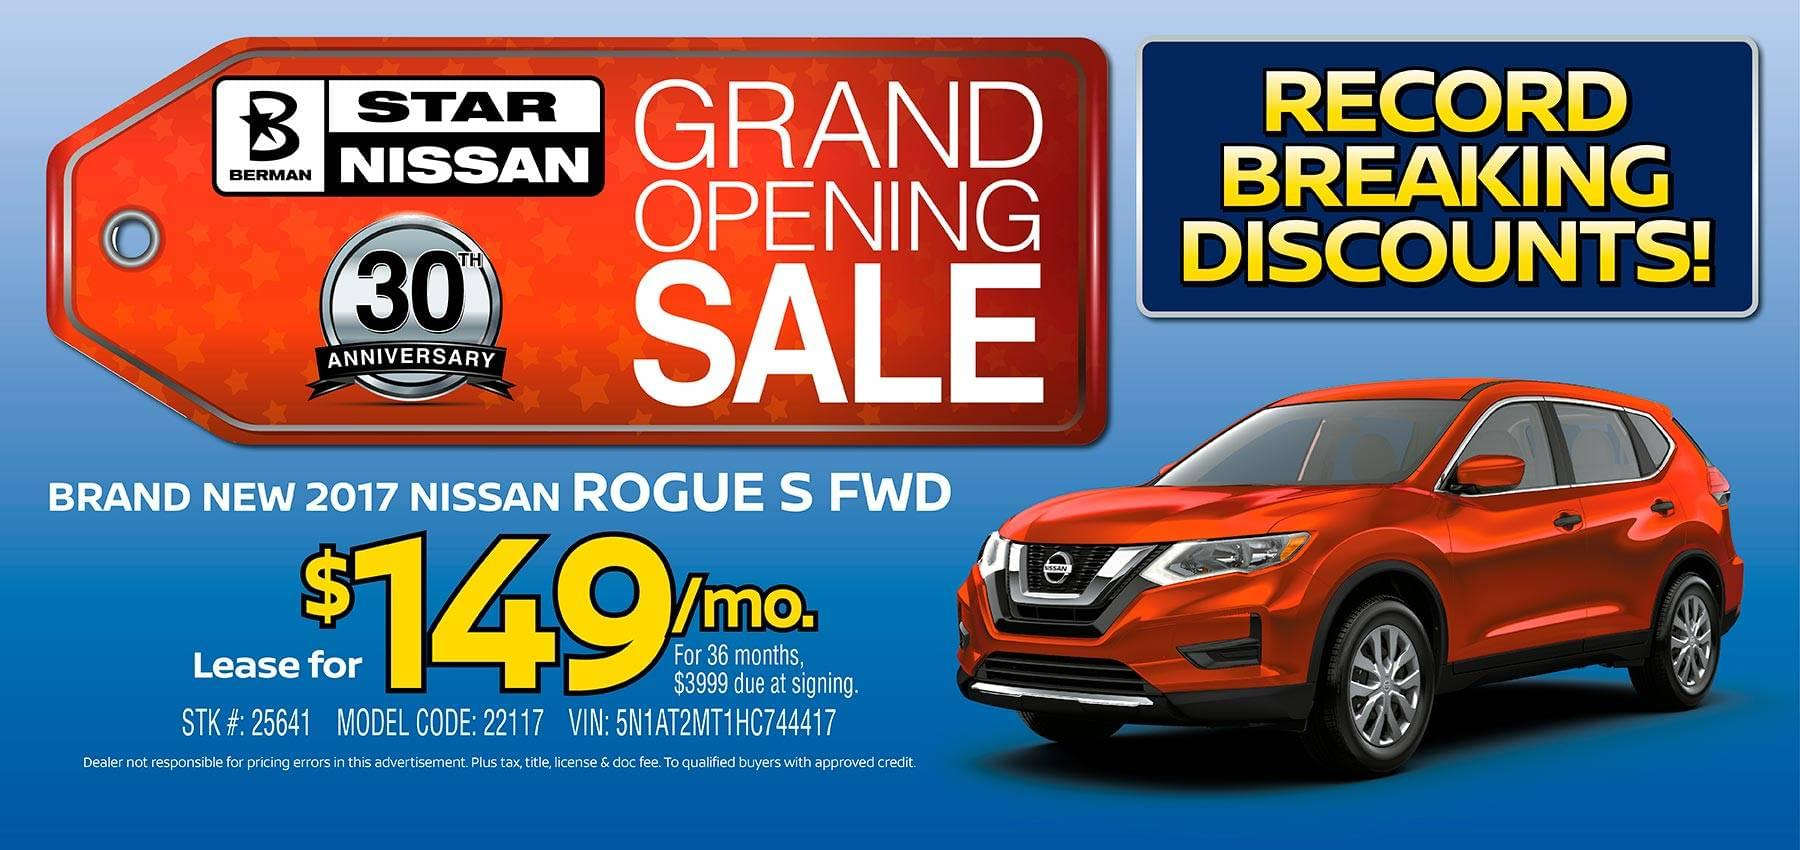 April Star Nissan Grand Opening Sale 2017 Nissan Rogue Offer